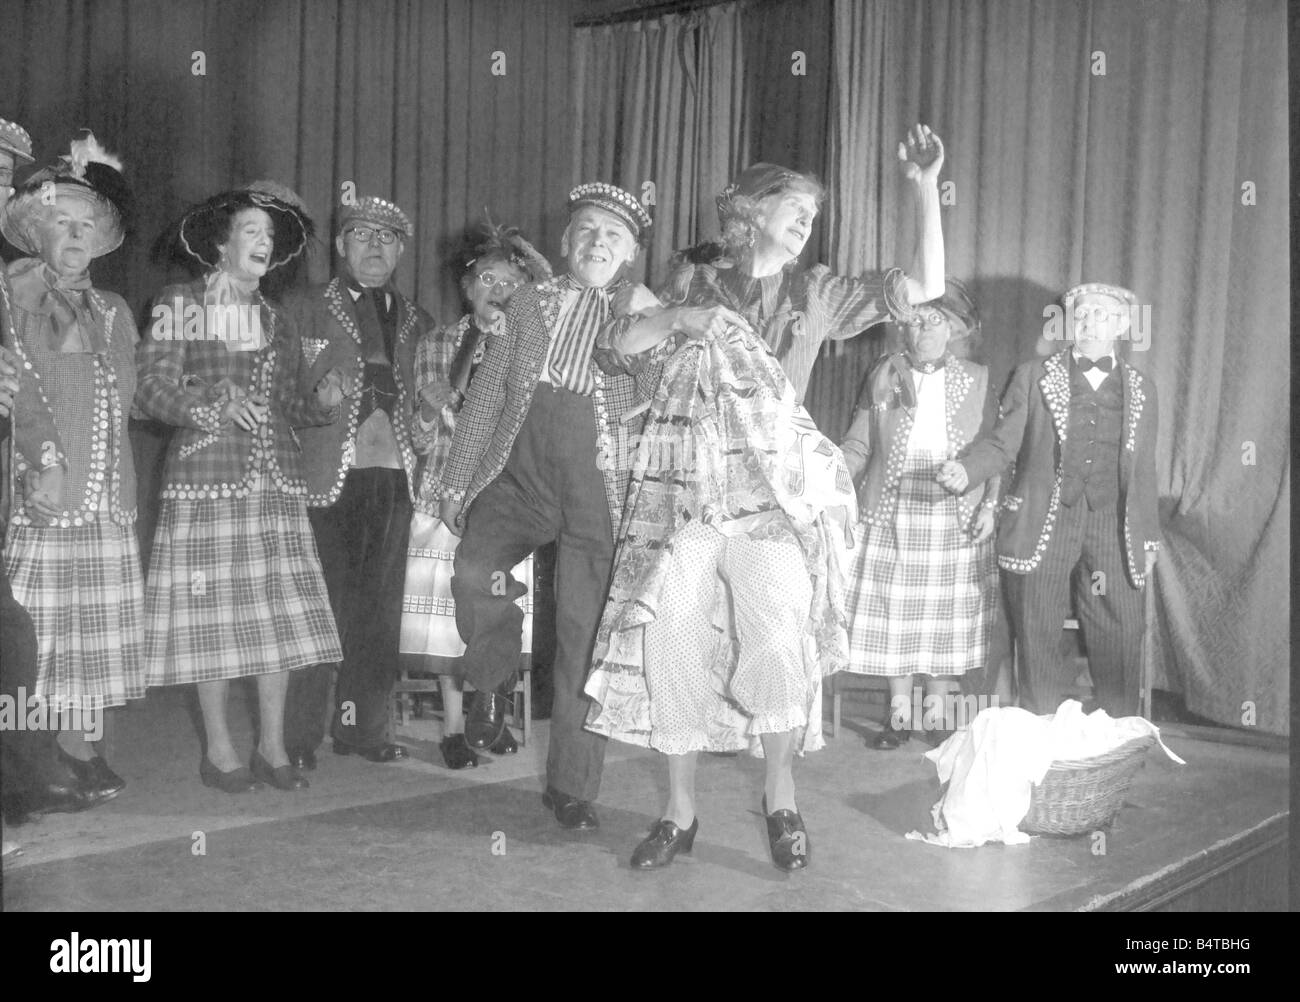 Old people dressed as Pearly Kings and Queens dancing on stage during a concert Woman showing her bloomers - Stock Image